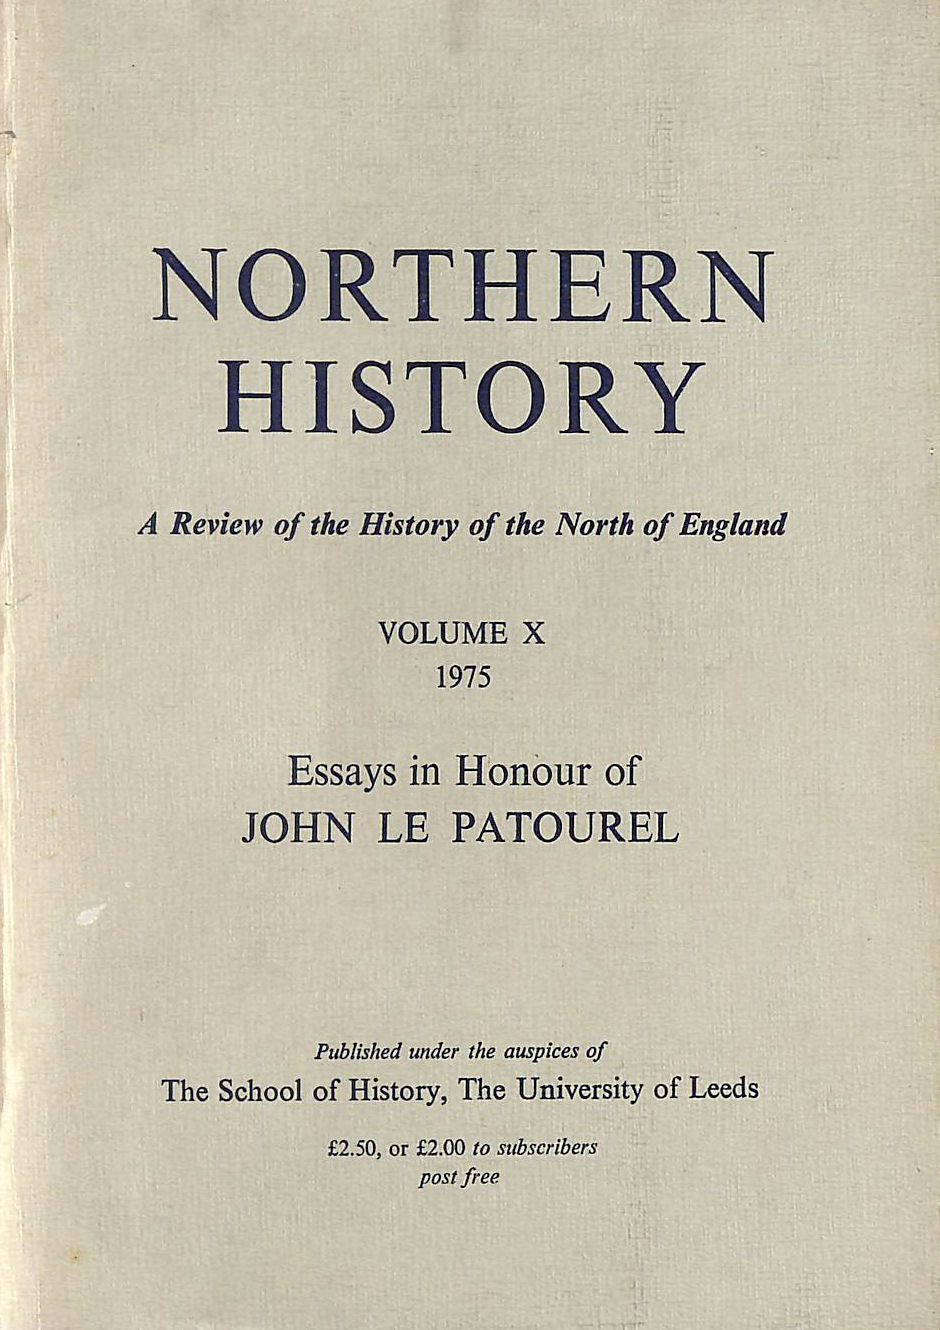 Image for Northern History : A Review of the History of the North of England Volume X 1975 Essays in Honour of John Le patourel